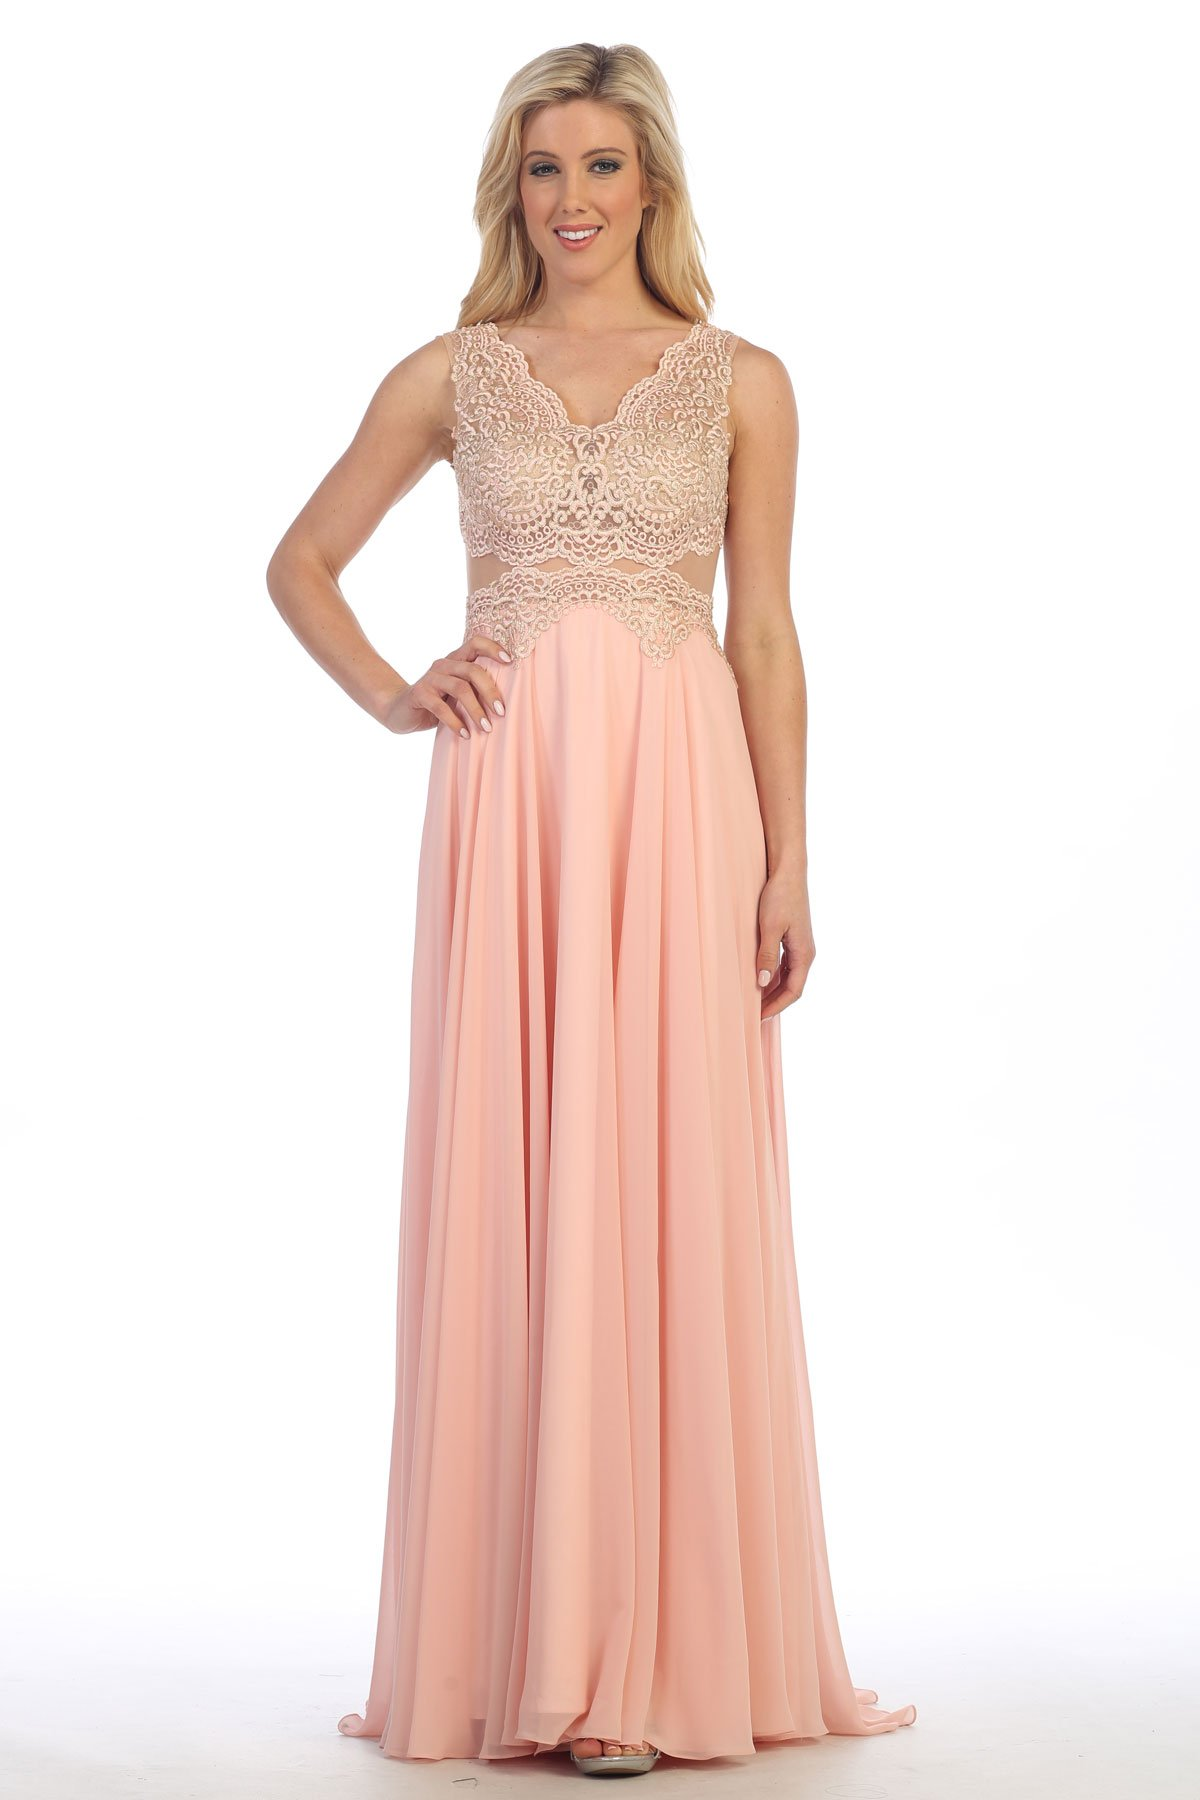 922f1523c8d Floor Length A-Line Prom and Evening Dress has Sleeveless Lace Bodice with V  Neck